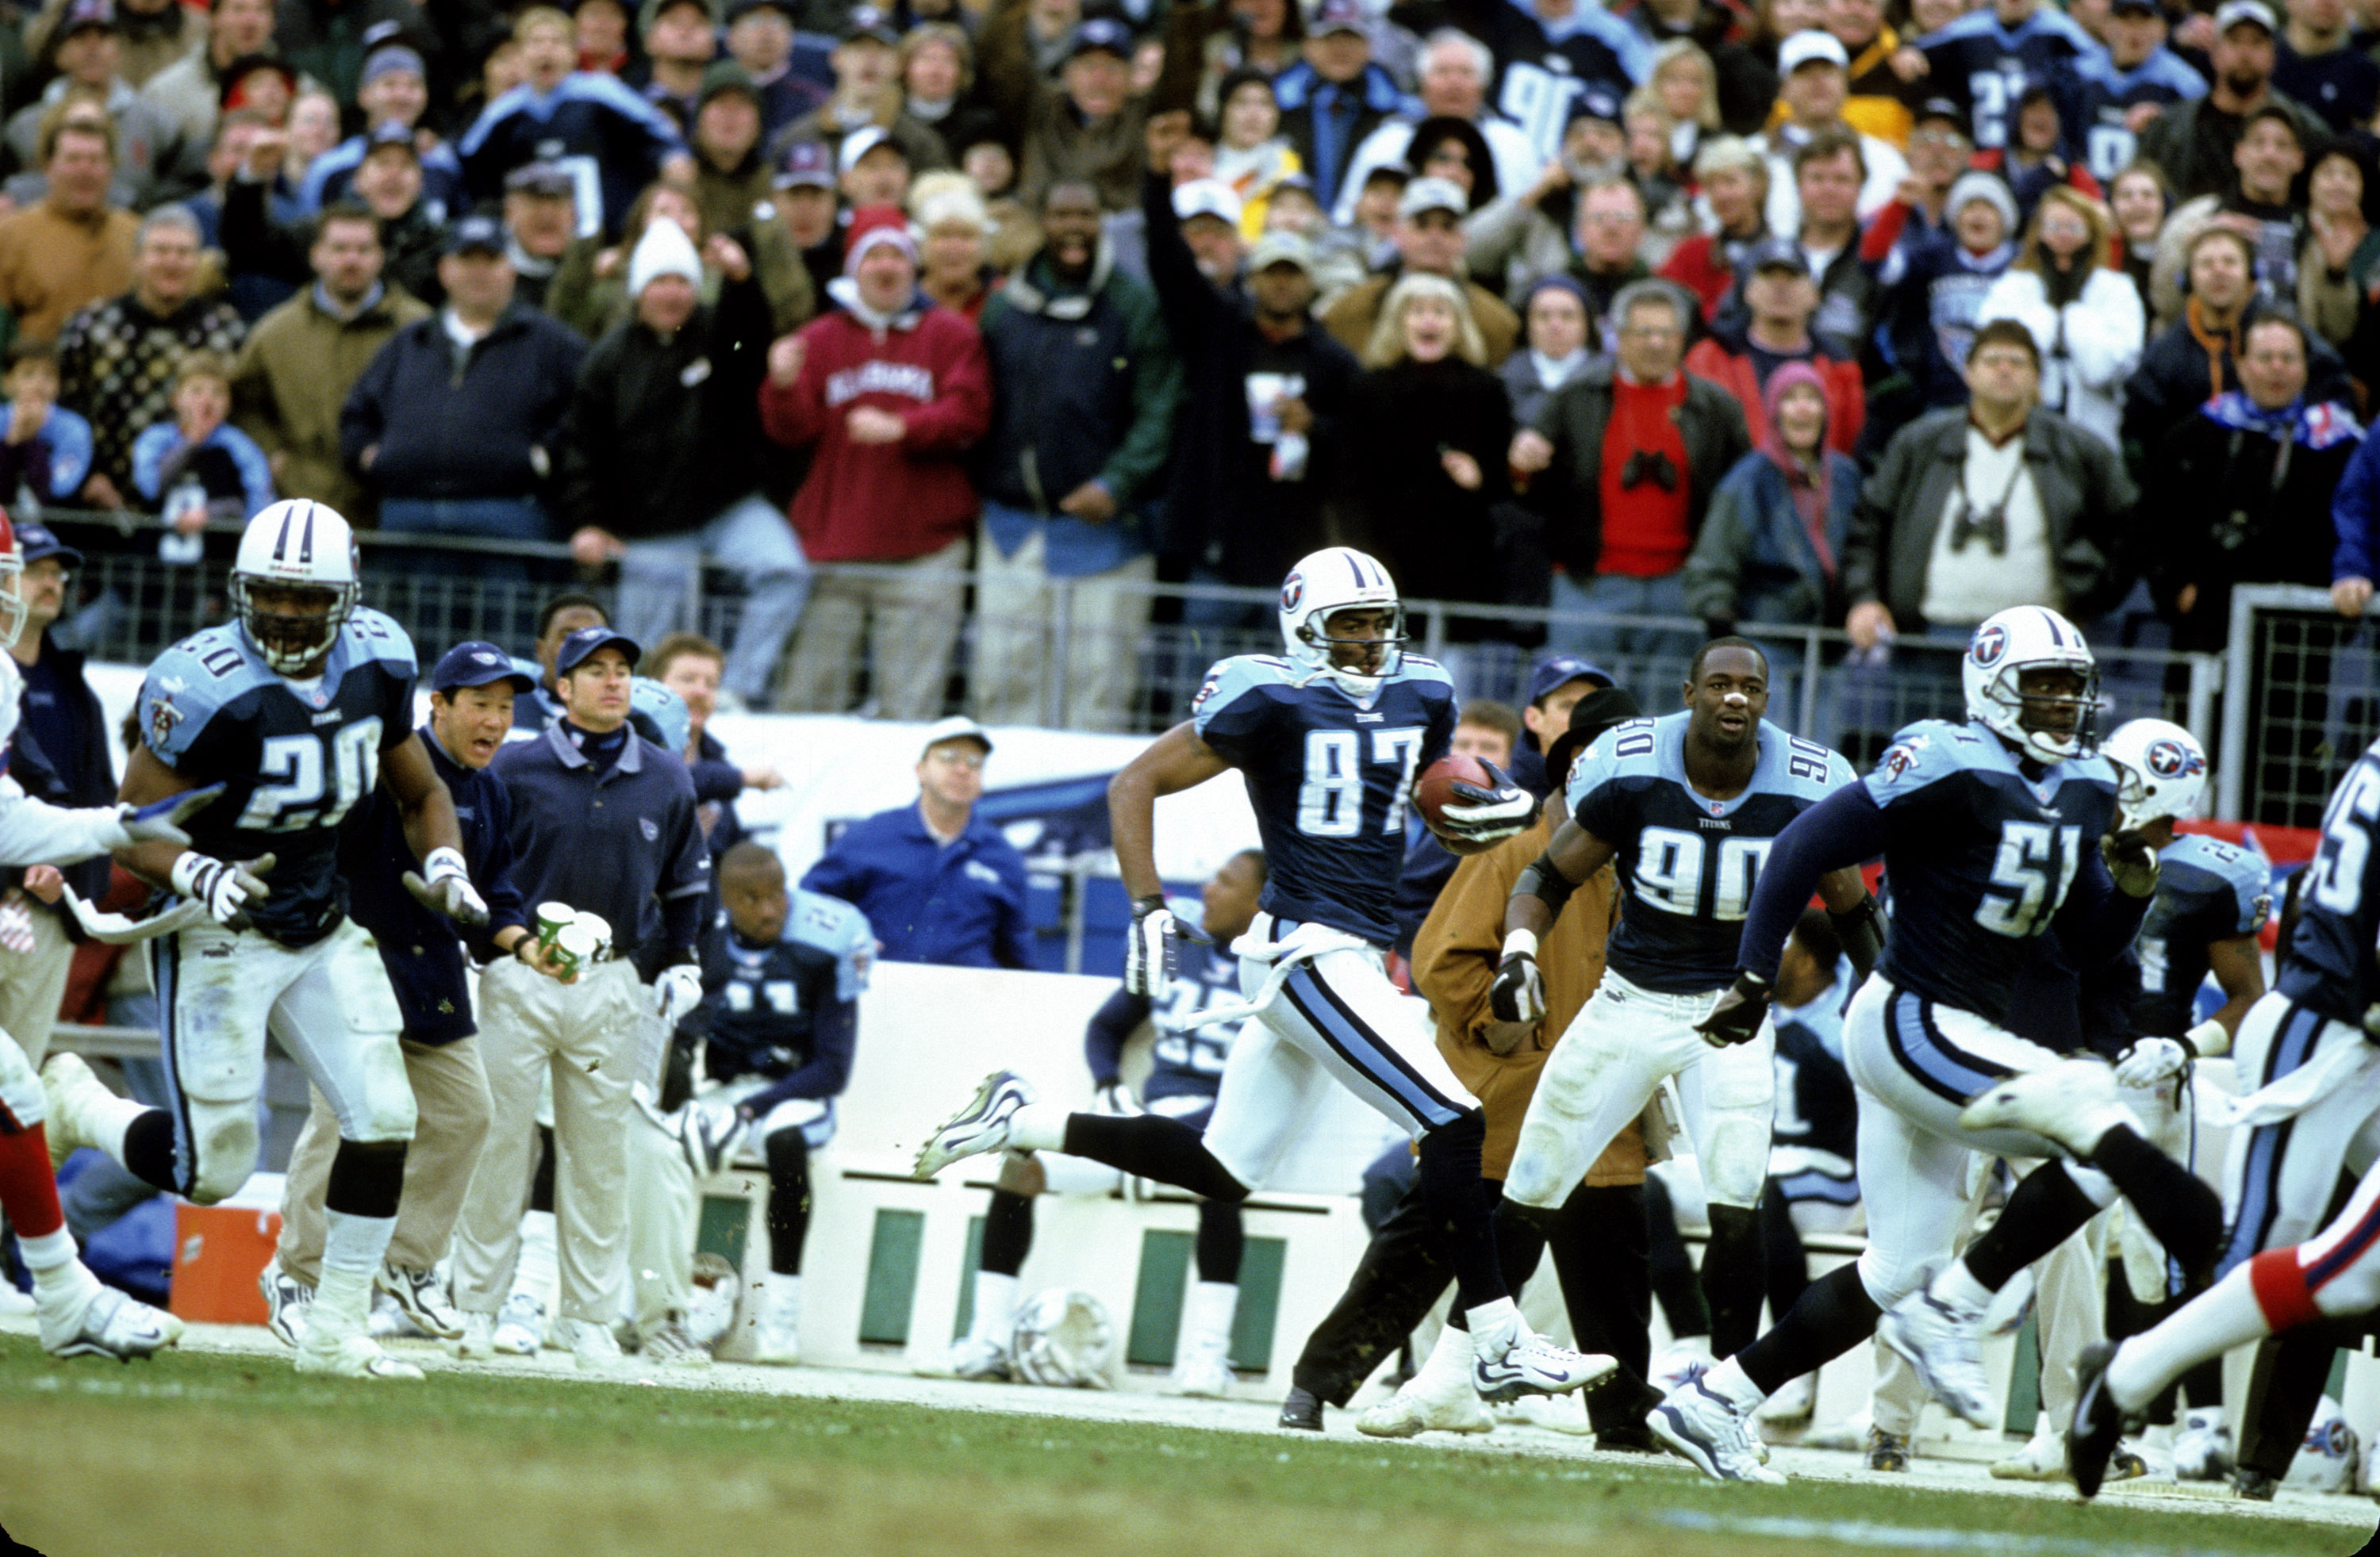 1999 AFC Wild Card Playoff Game - Buffalo Bills vs Tennessee Titans - January 8, 2000